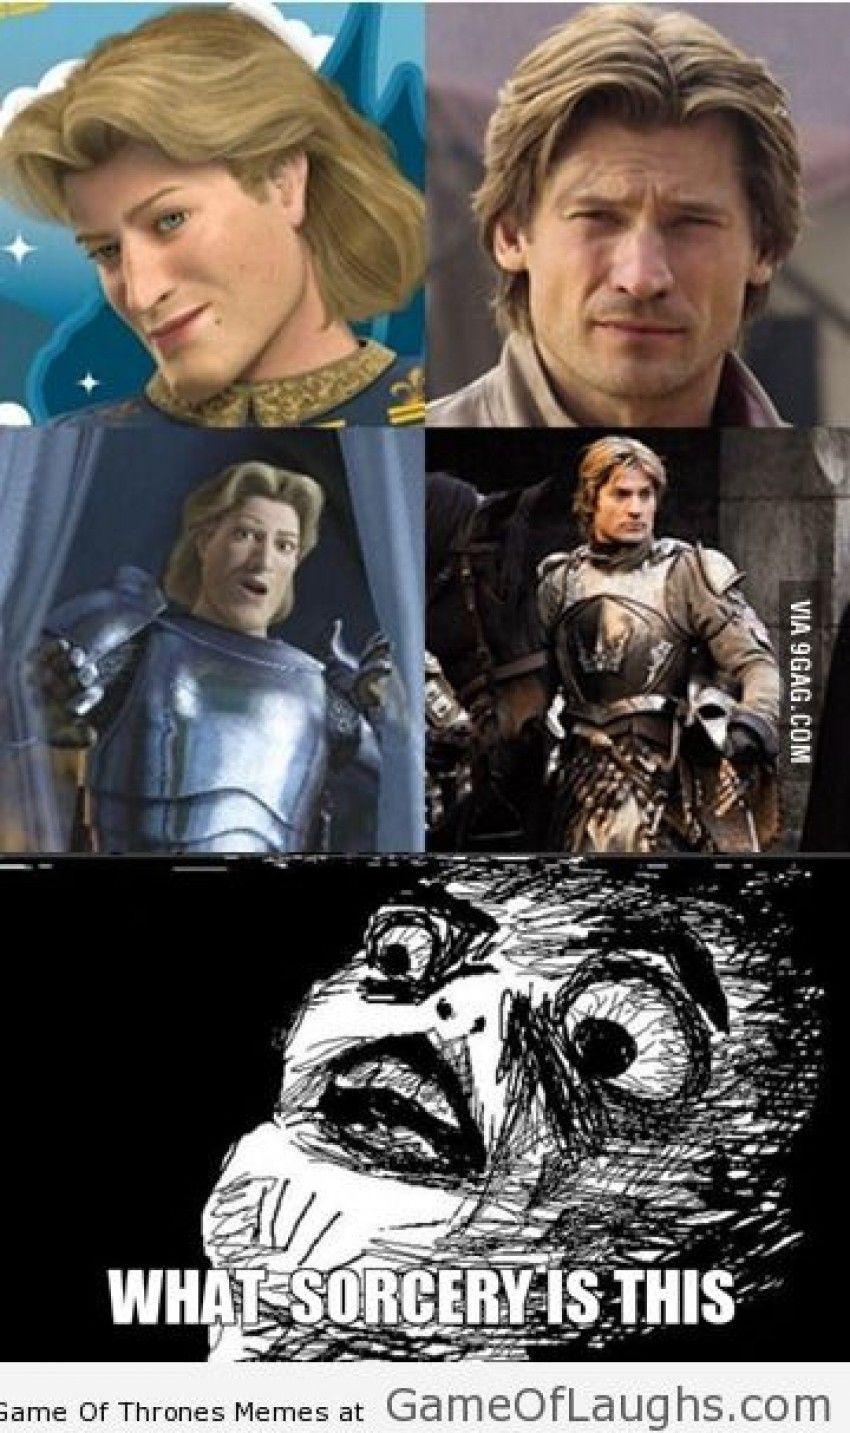 Game Of Thrones Meets Shrek | Game Of Laughs | Game Of ...